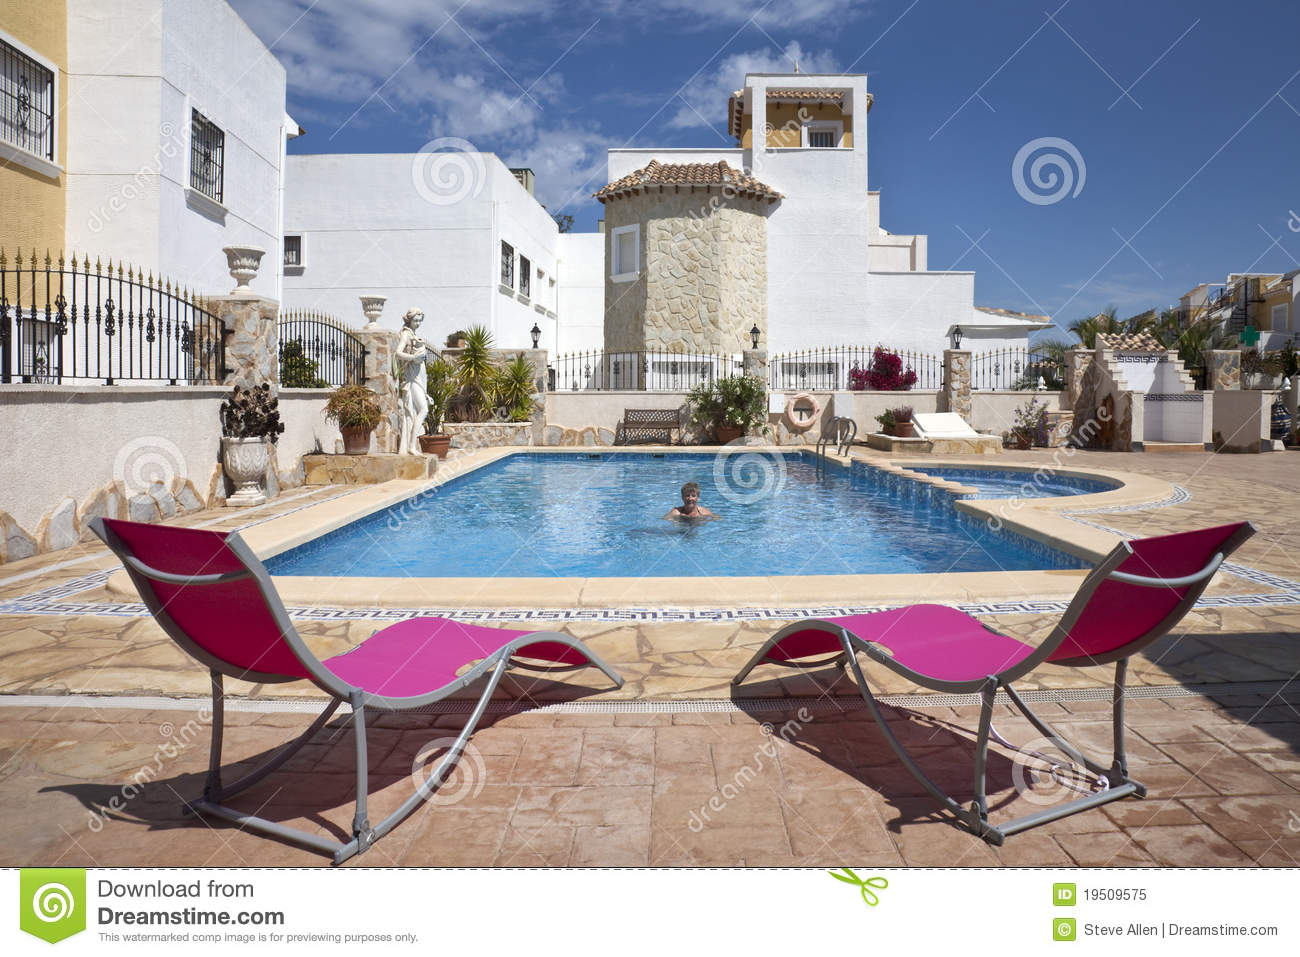 Spanish Vacation Resort Swimming Pool Royalty Free Stock Photo Image 19509575